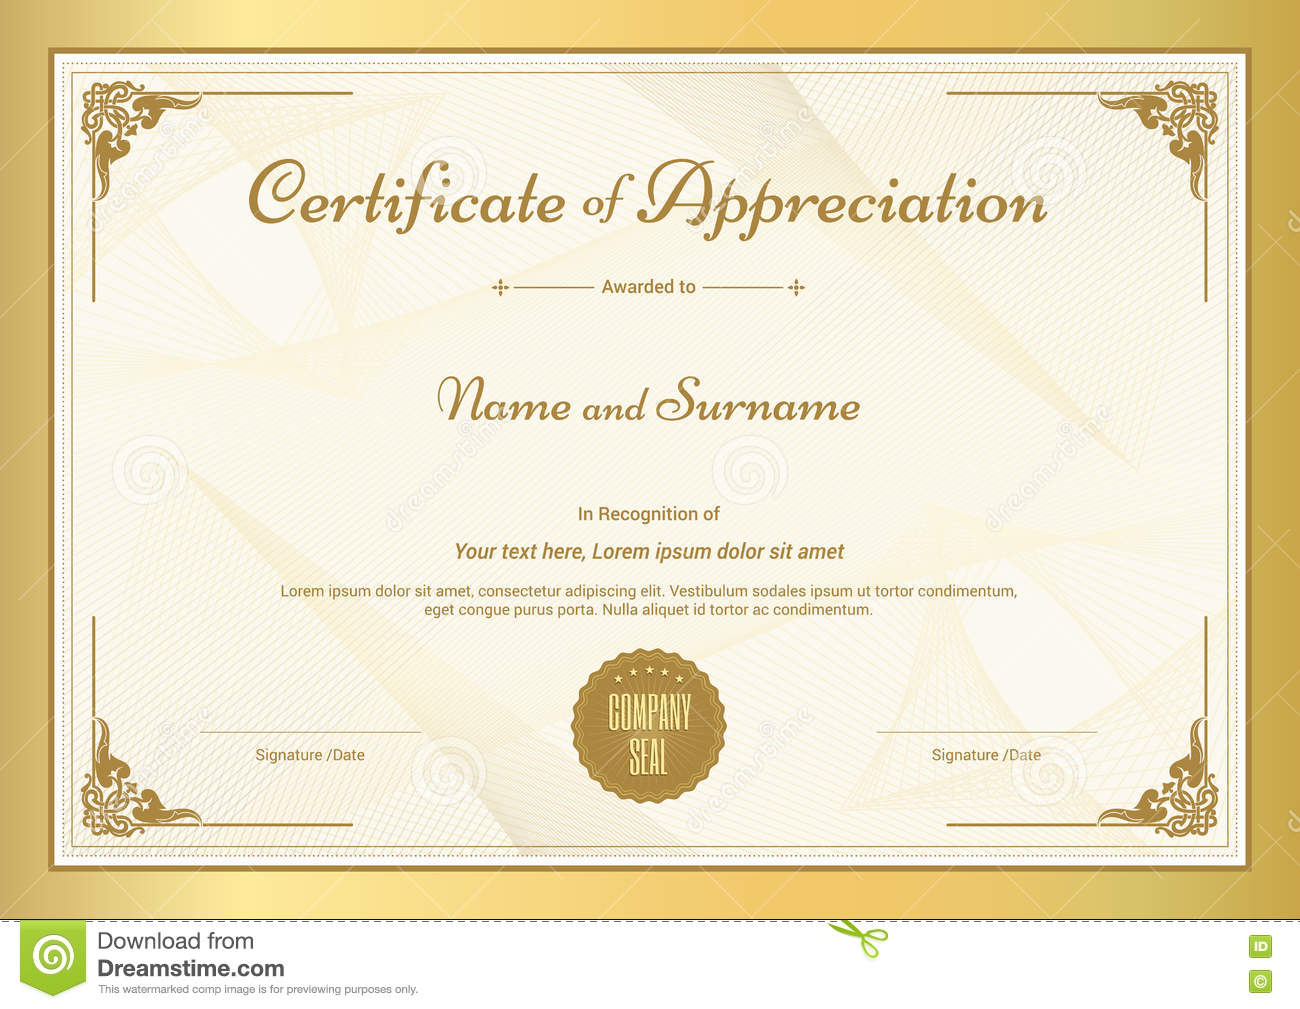 Certificate Of Appreciation Template With Gold Border ...